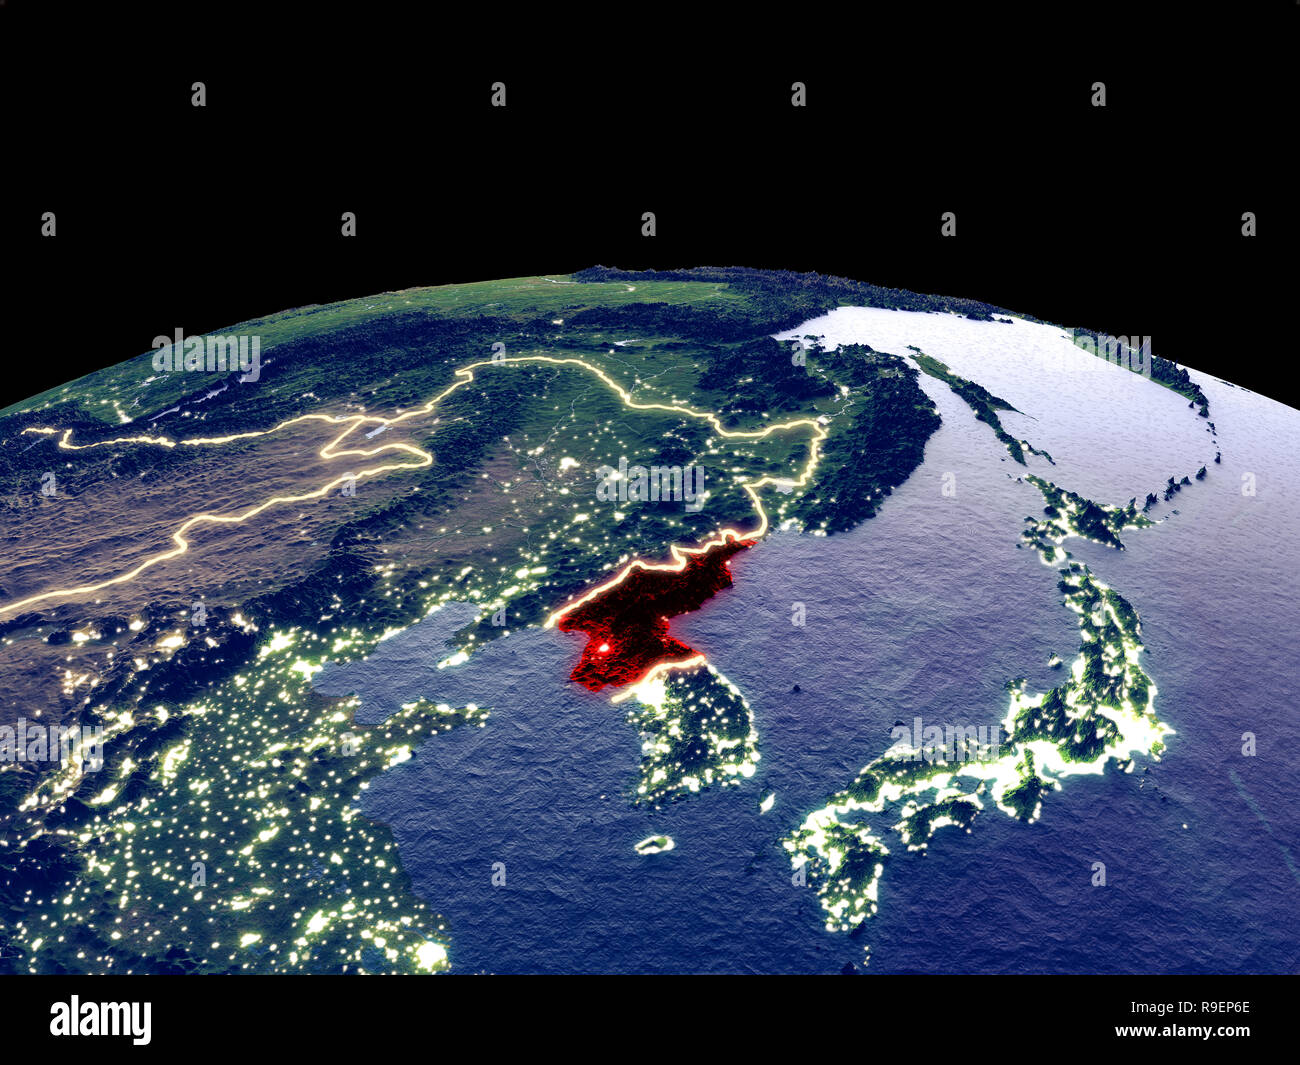 North Korea from space on planet Earth at night with bright